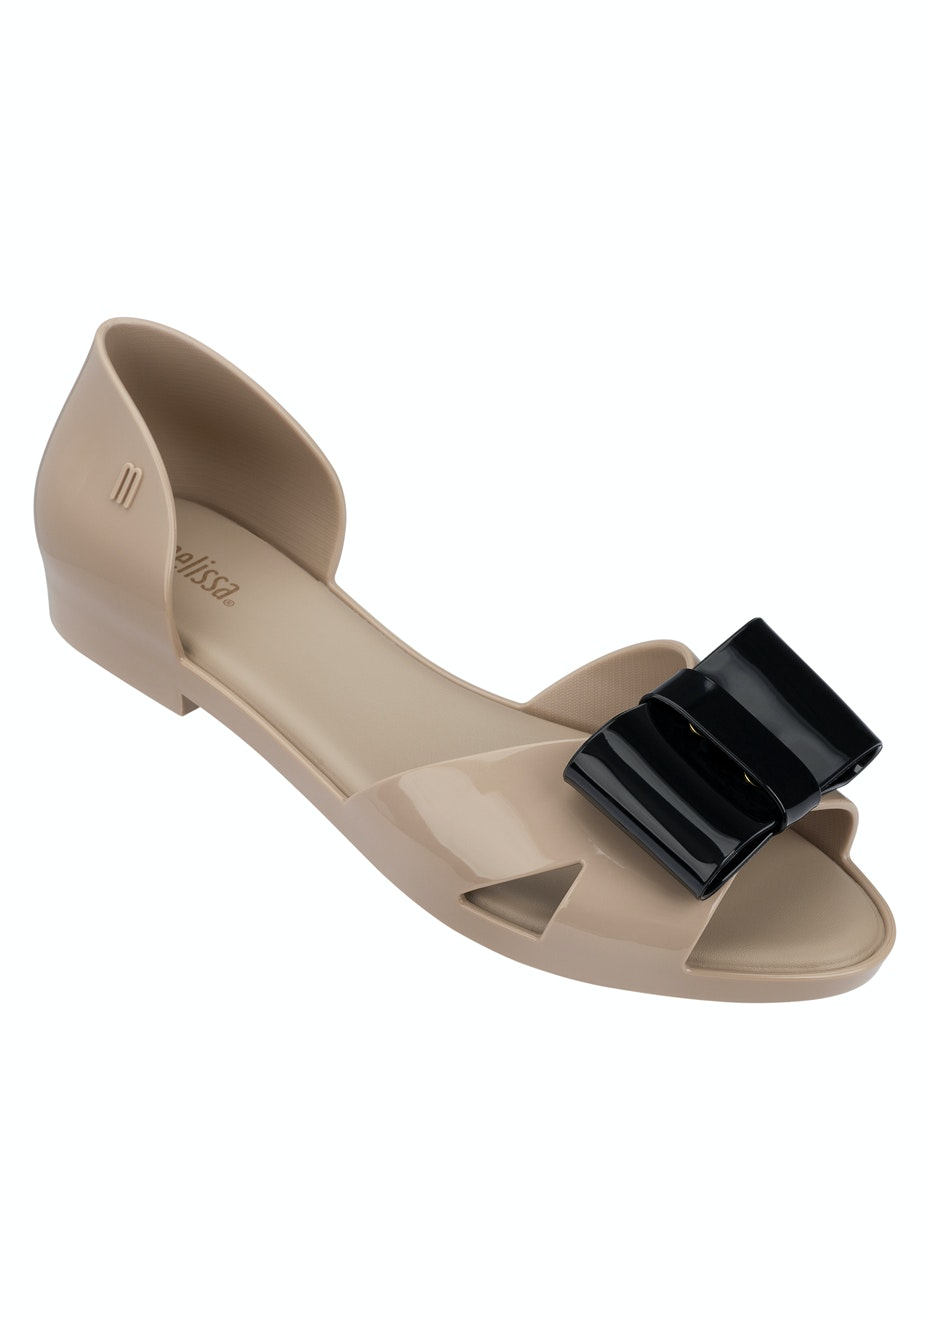 Melissa - Seduction - Beige/Black